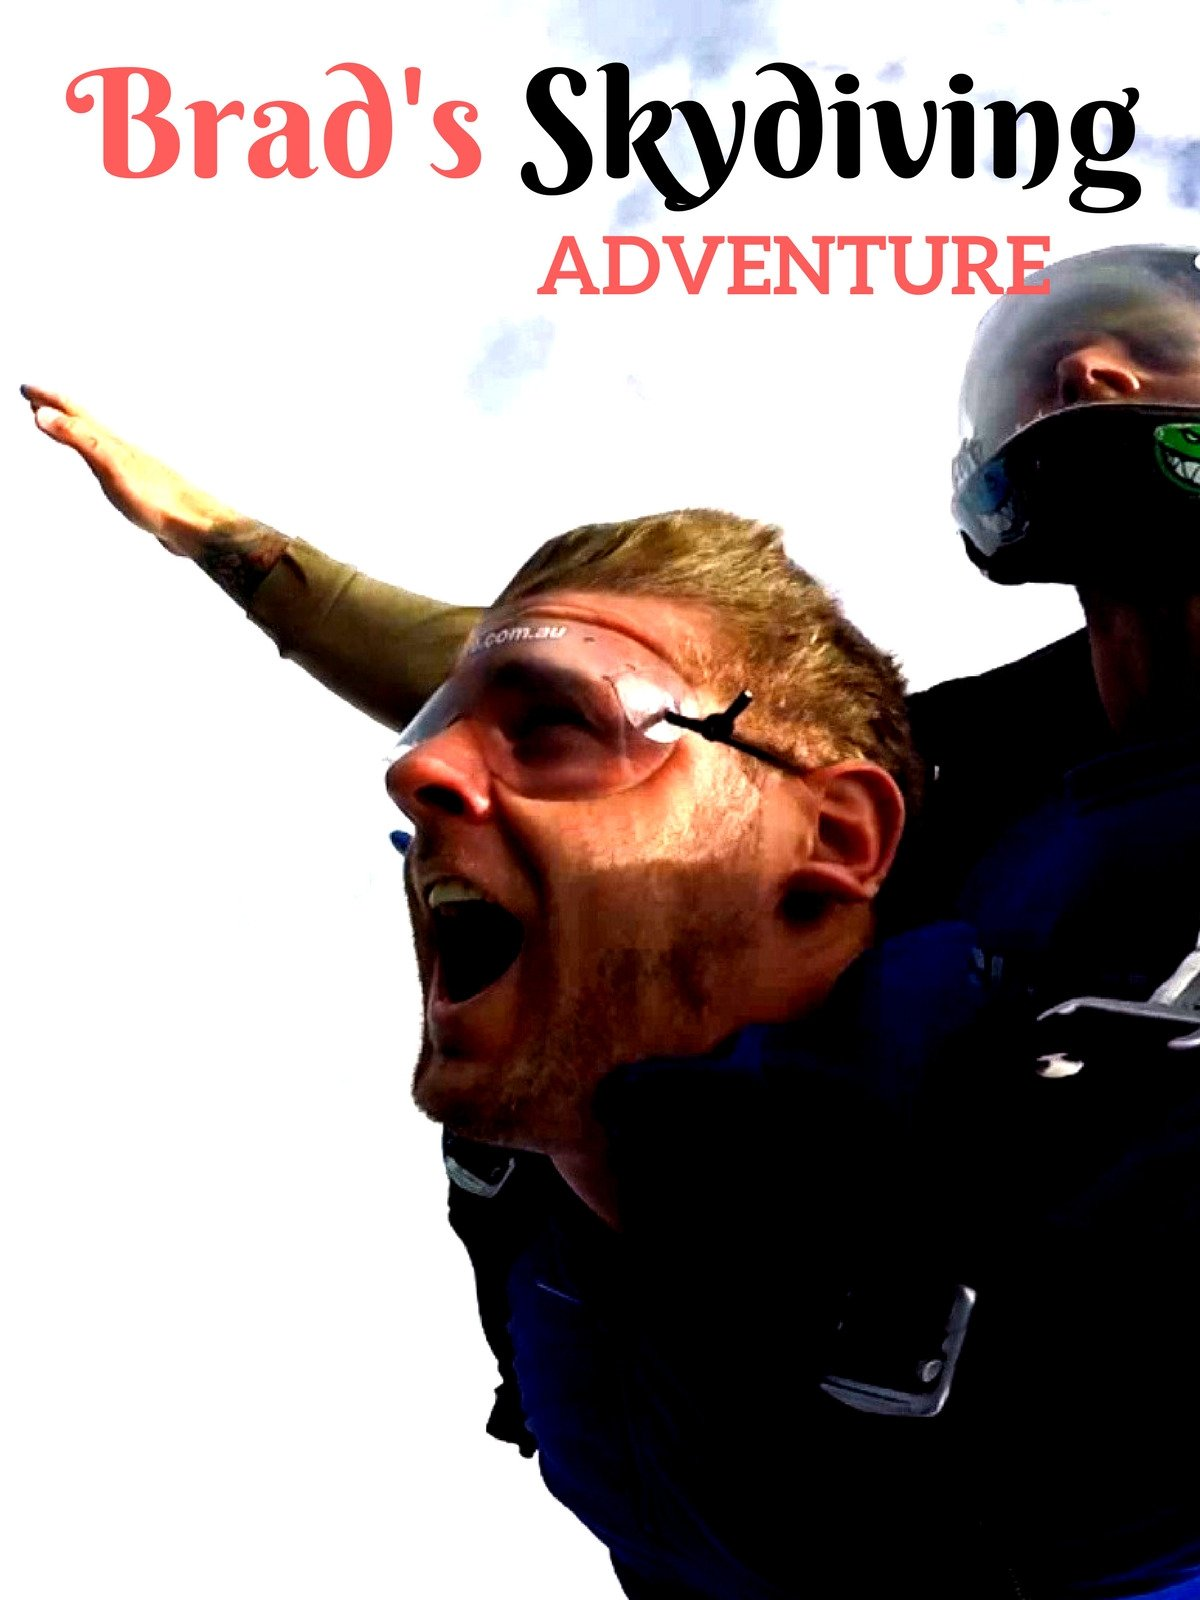 Brad's Skydiving Adventure